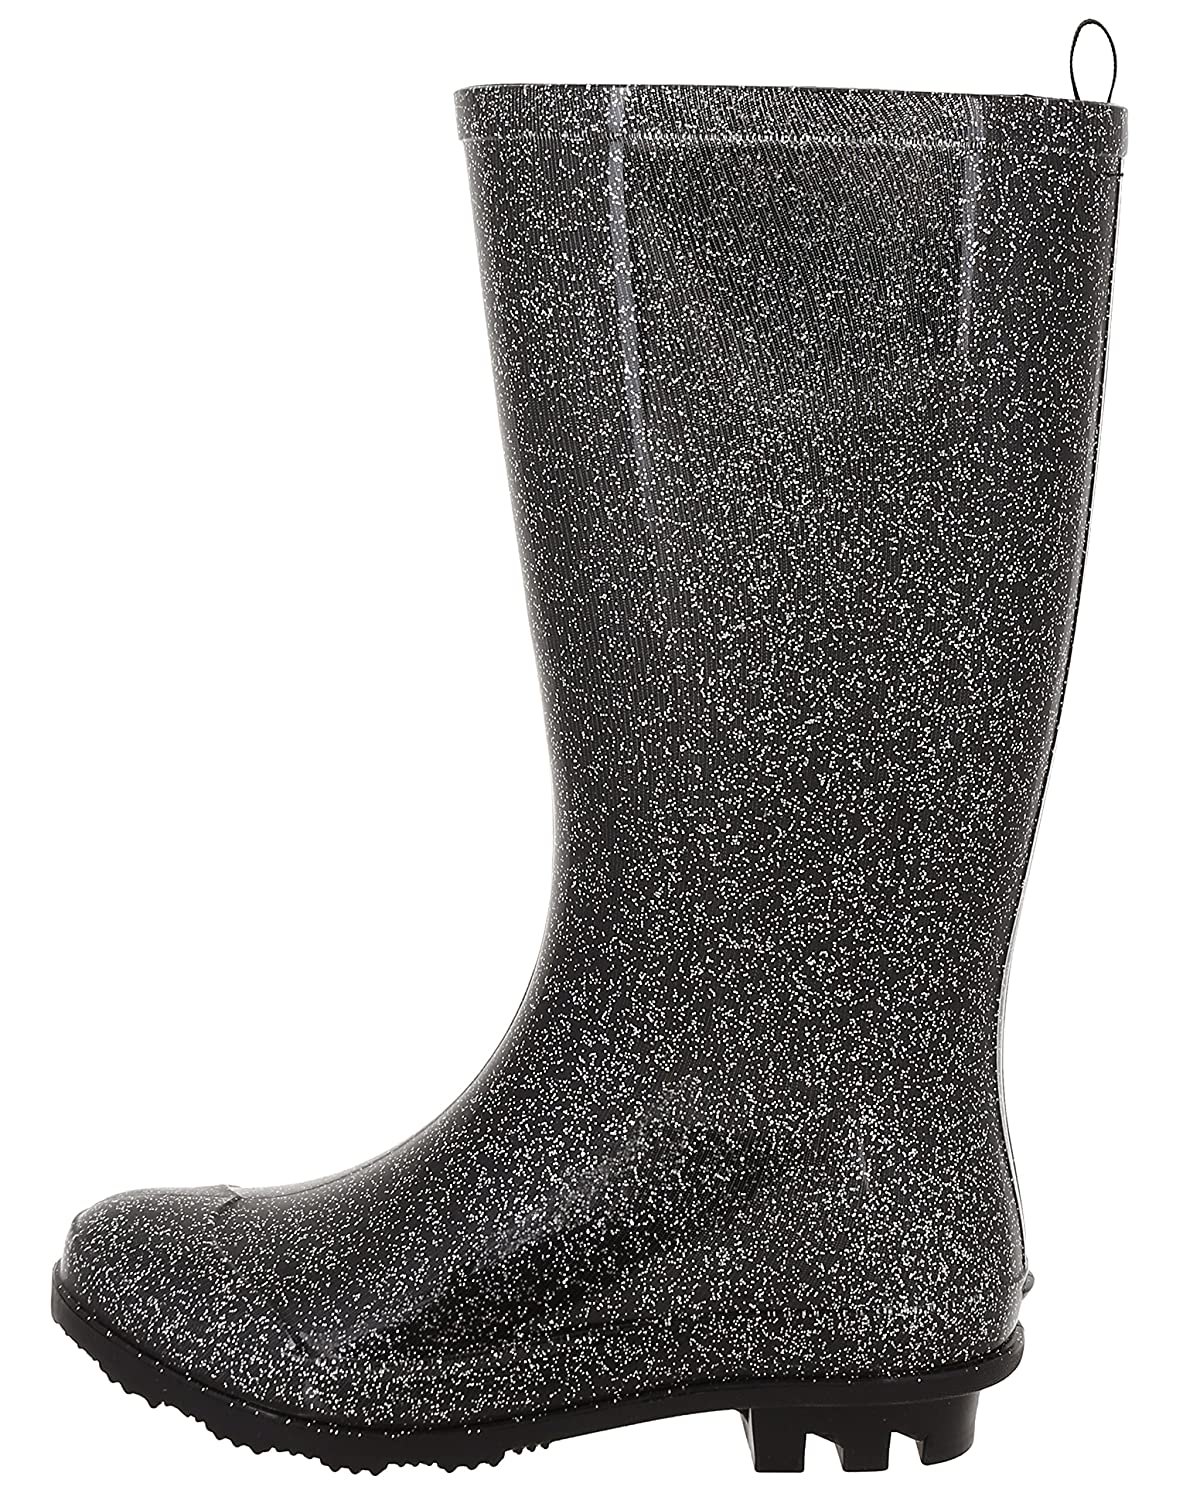 Capelli New York Girls Allover Glitter Fisherman Style Rain Boots RBT-2076KYFB